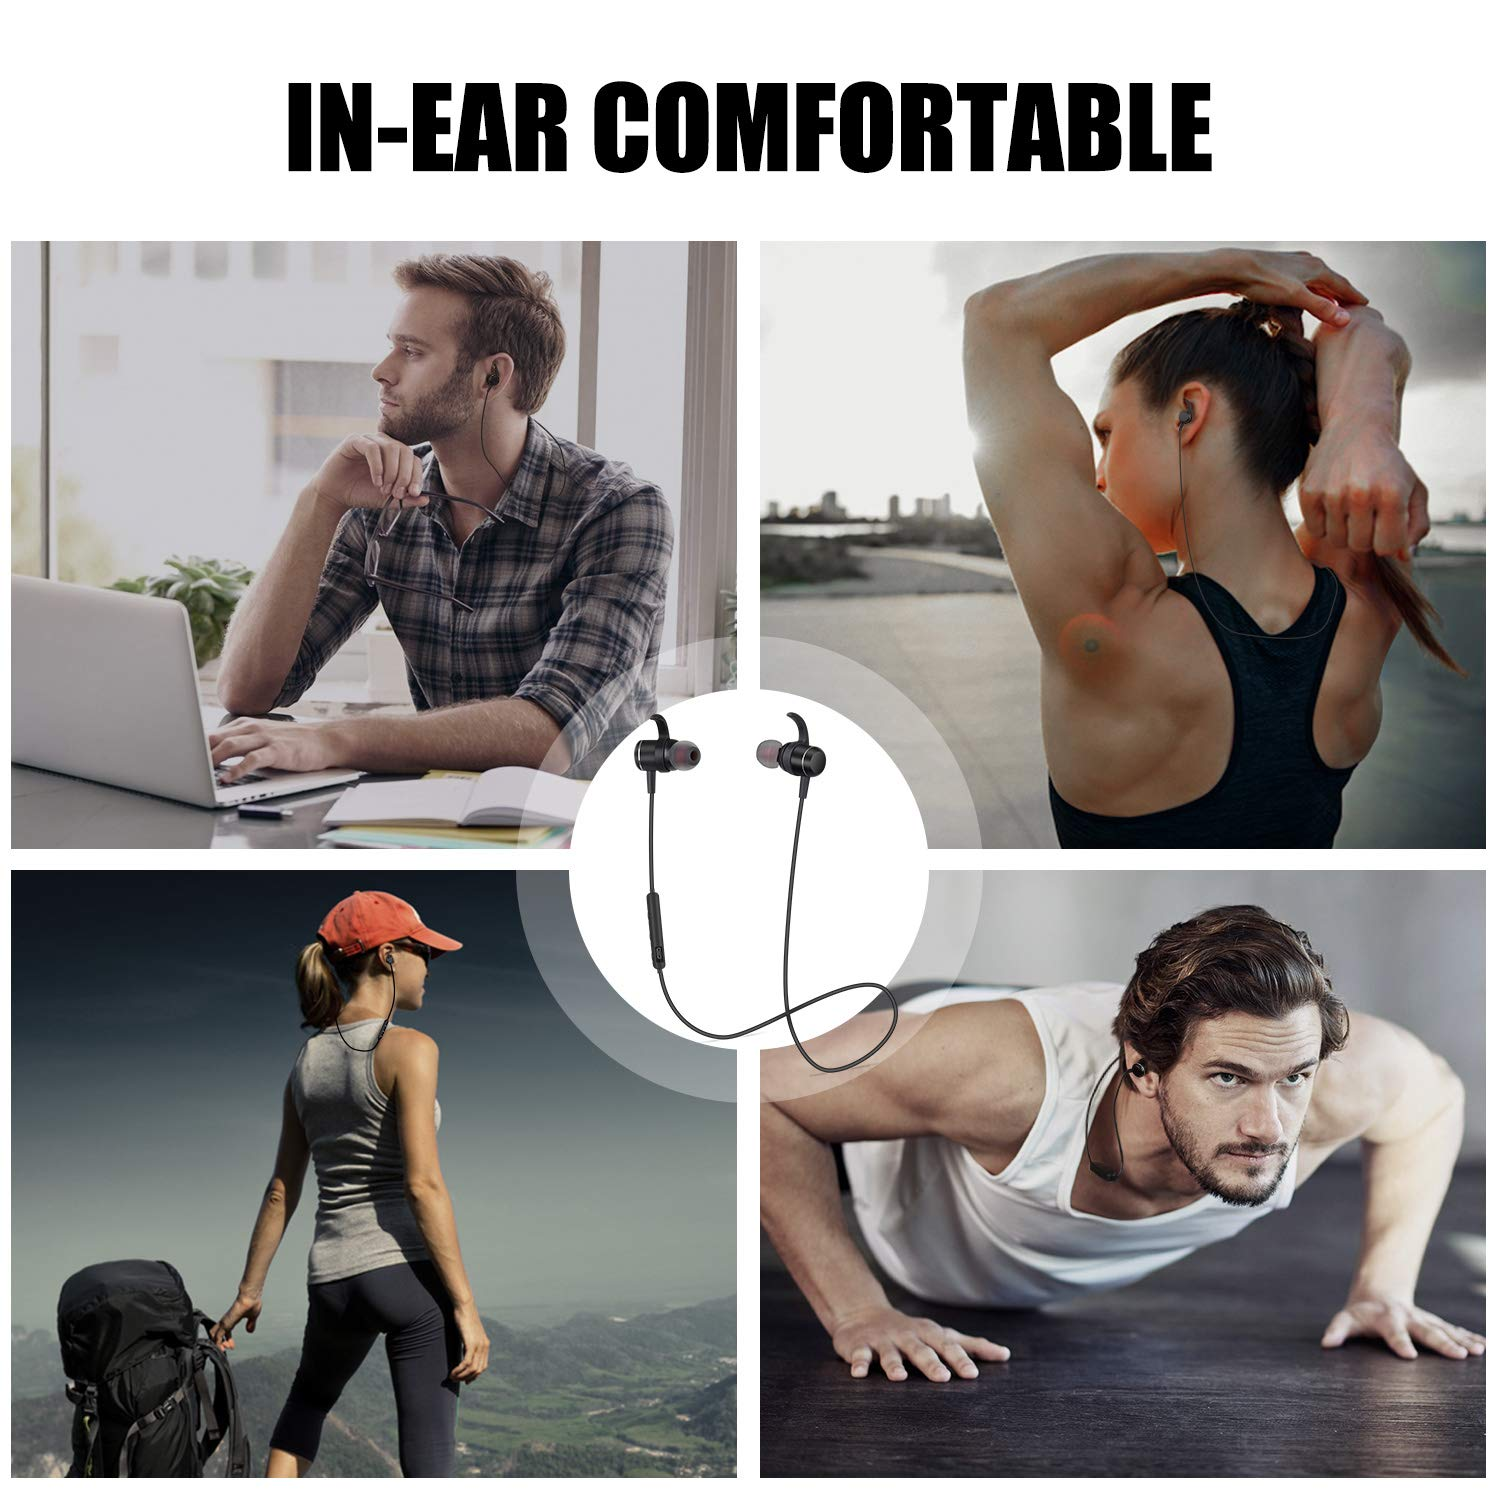 Bluetooth Headphones with Microphone Wireless Headphones in-Ear Bluetooth Earbuds Wireless Earbuds with Mic Magnetic Ear Buds Sweatproof Earphones Sports Running Gym Workout Noise Cancelling